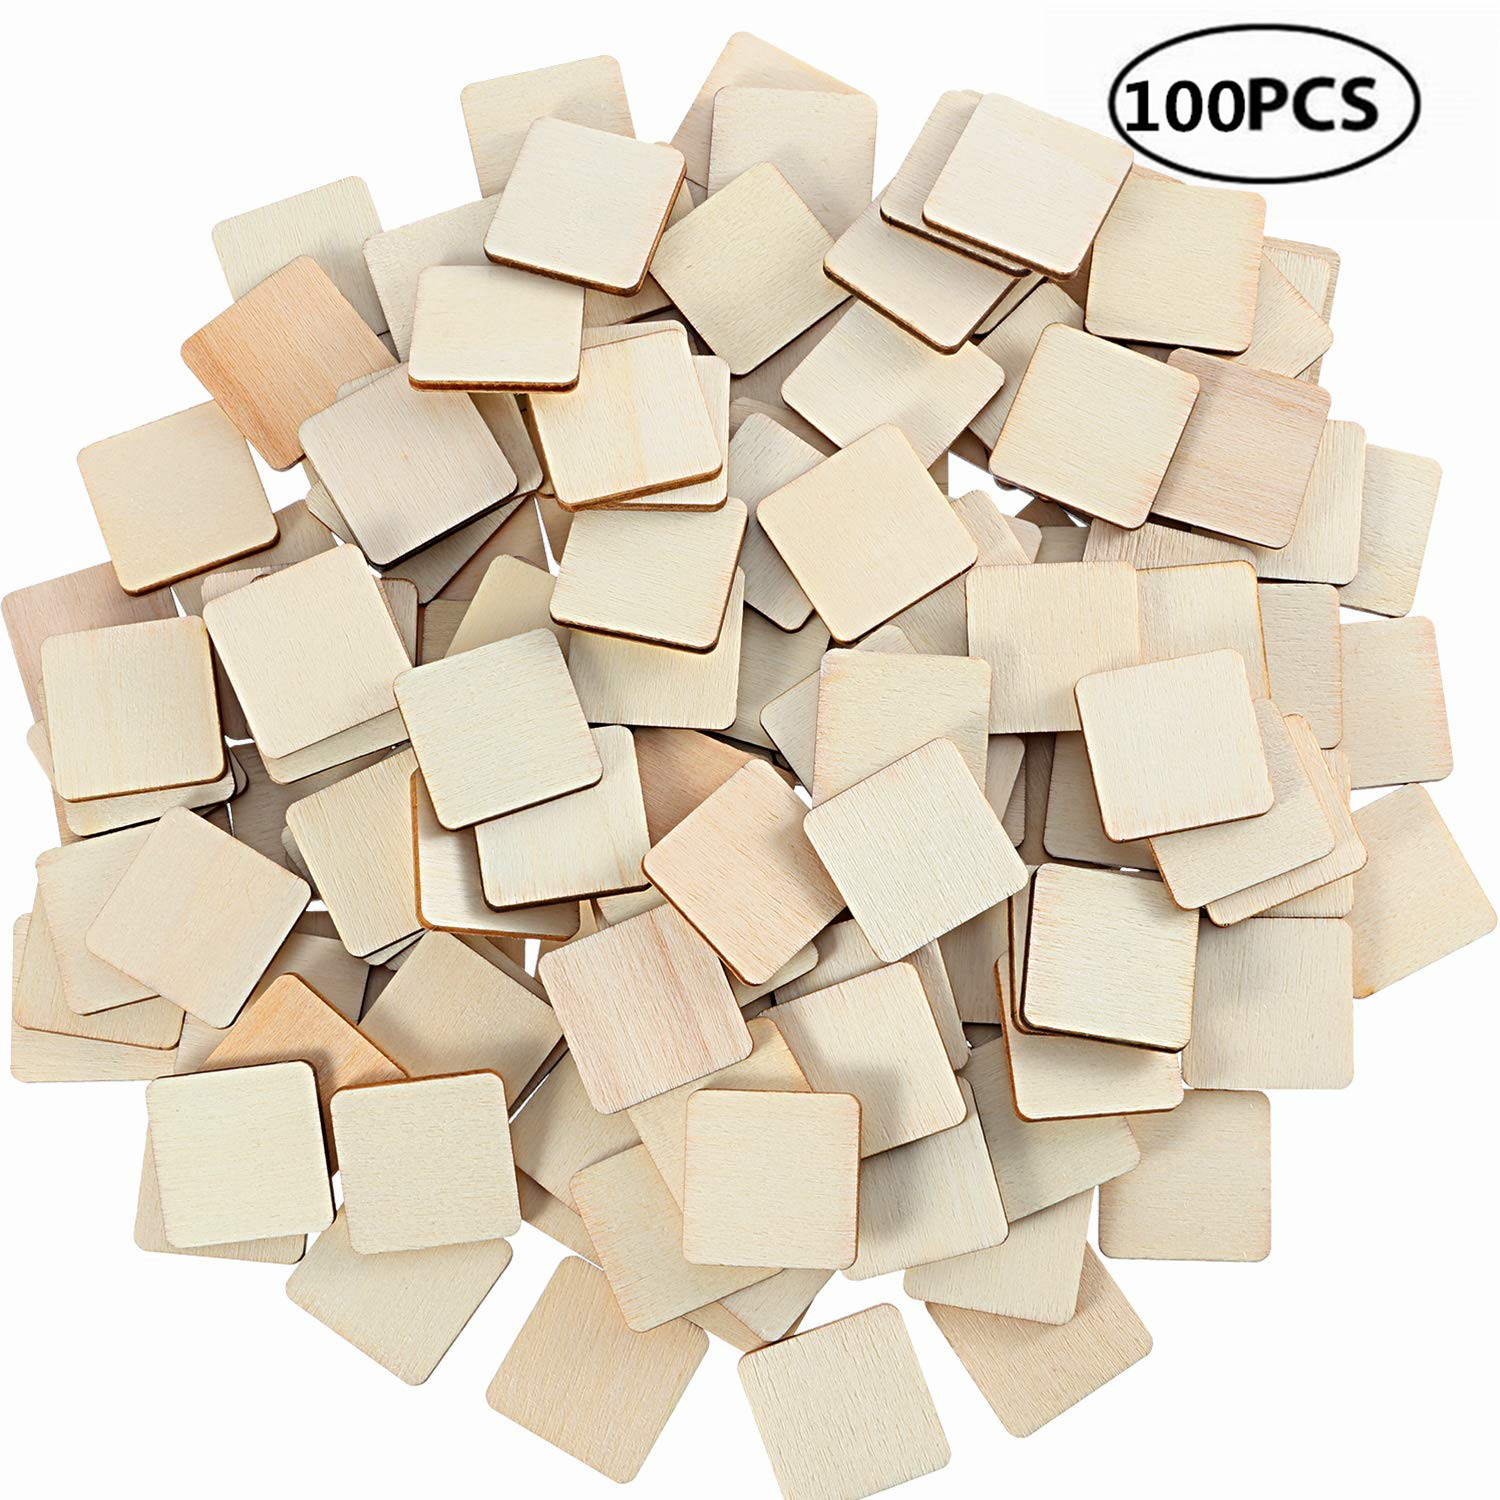 Us 1 54 43 Off 100pcs 10mm 0 39inch Unfinished Wood Pieces Wooden Squares Cutout Tiles Natural Rustic Craft Wood For Home Decor Diy Supplies In Wood